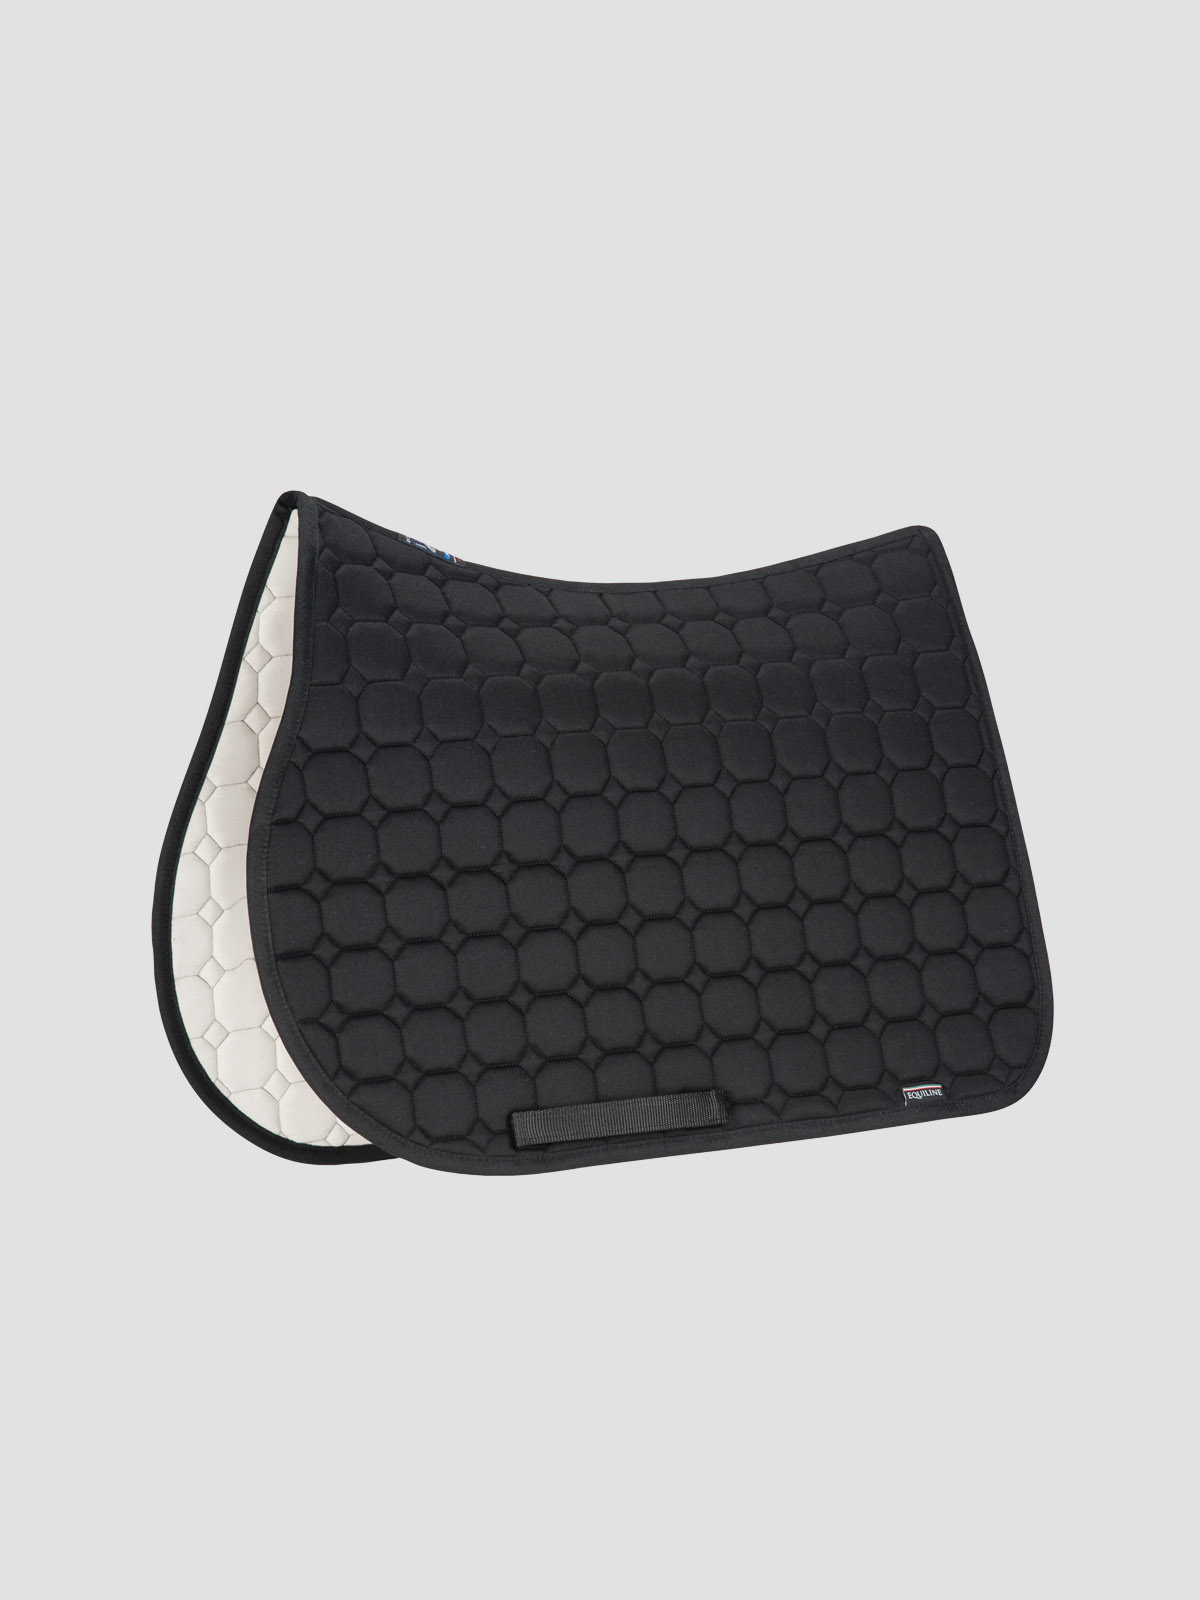 Octagon Saddle Pad 9